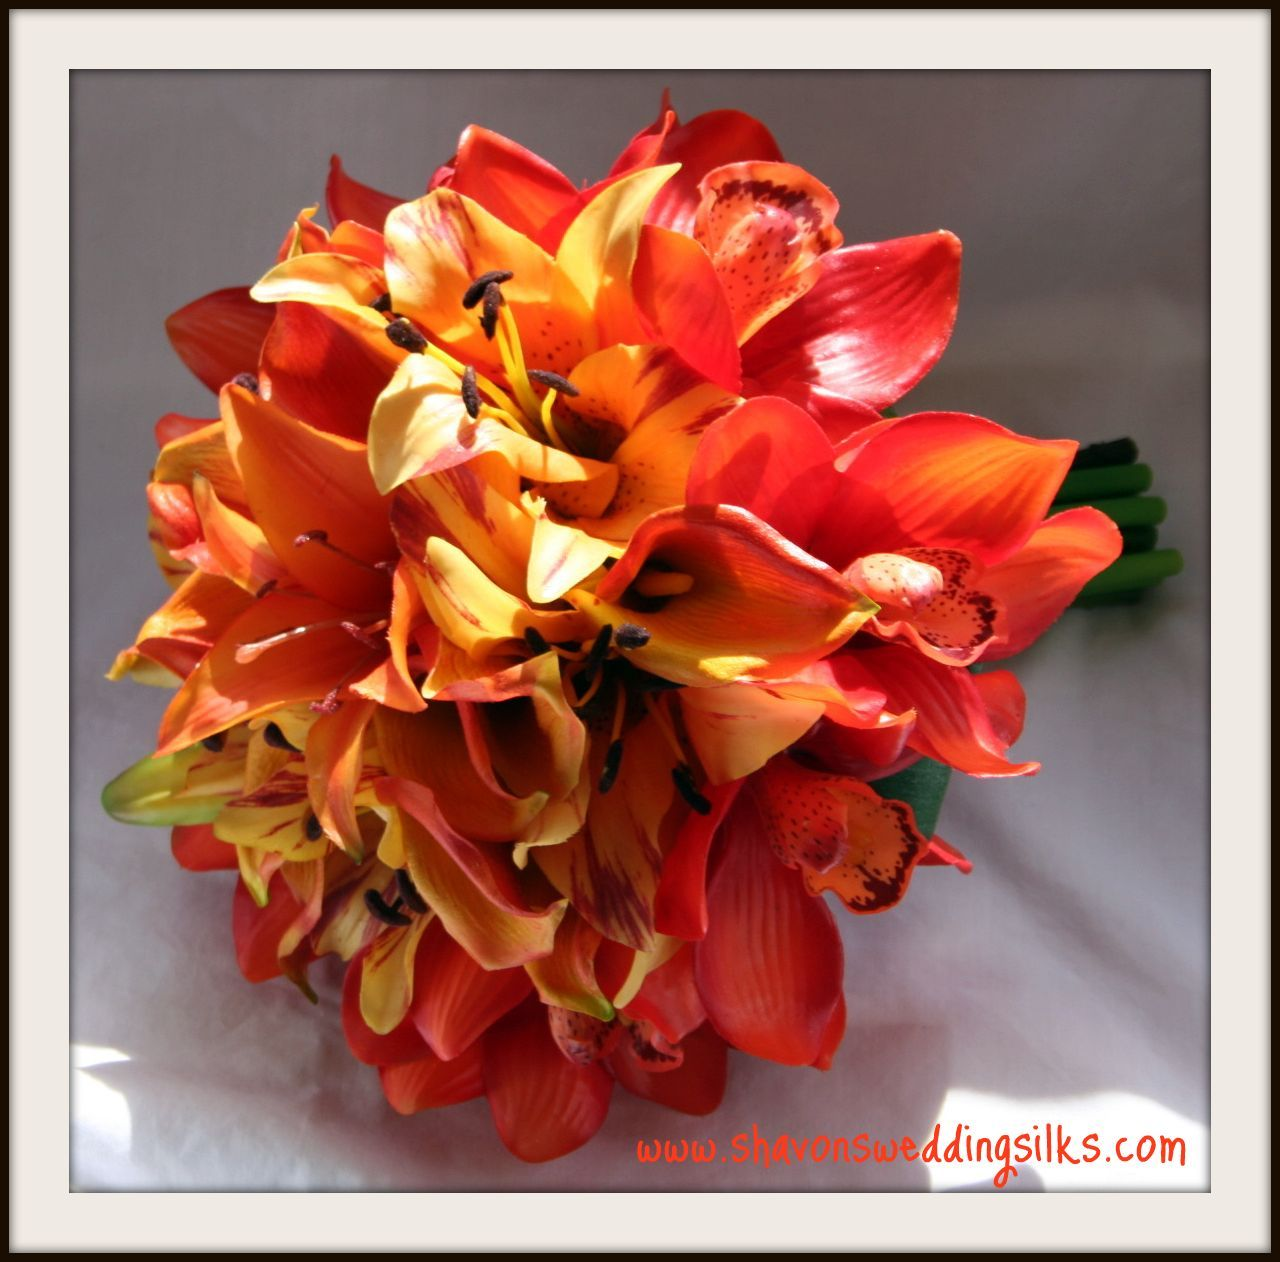 Flowers & Decor, yellow, orange, Bride Bouquets, Flowers, Bouquet, Wedding, Lilies, Cymbidium, Natural, Mango, Touch, Shavons wedding silks, Oriental, Floramatique